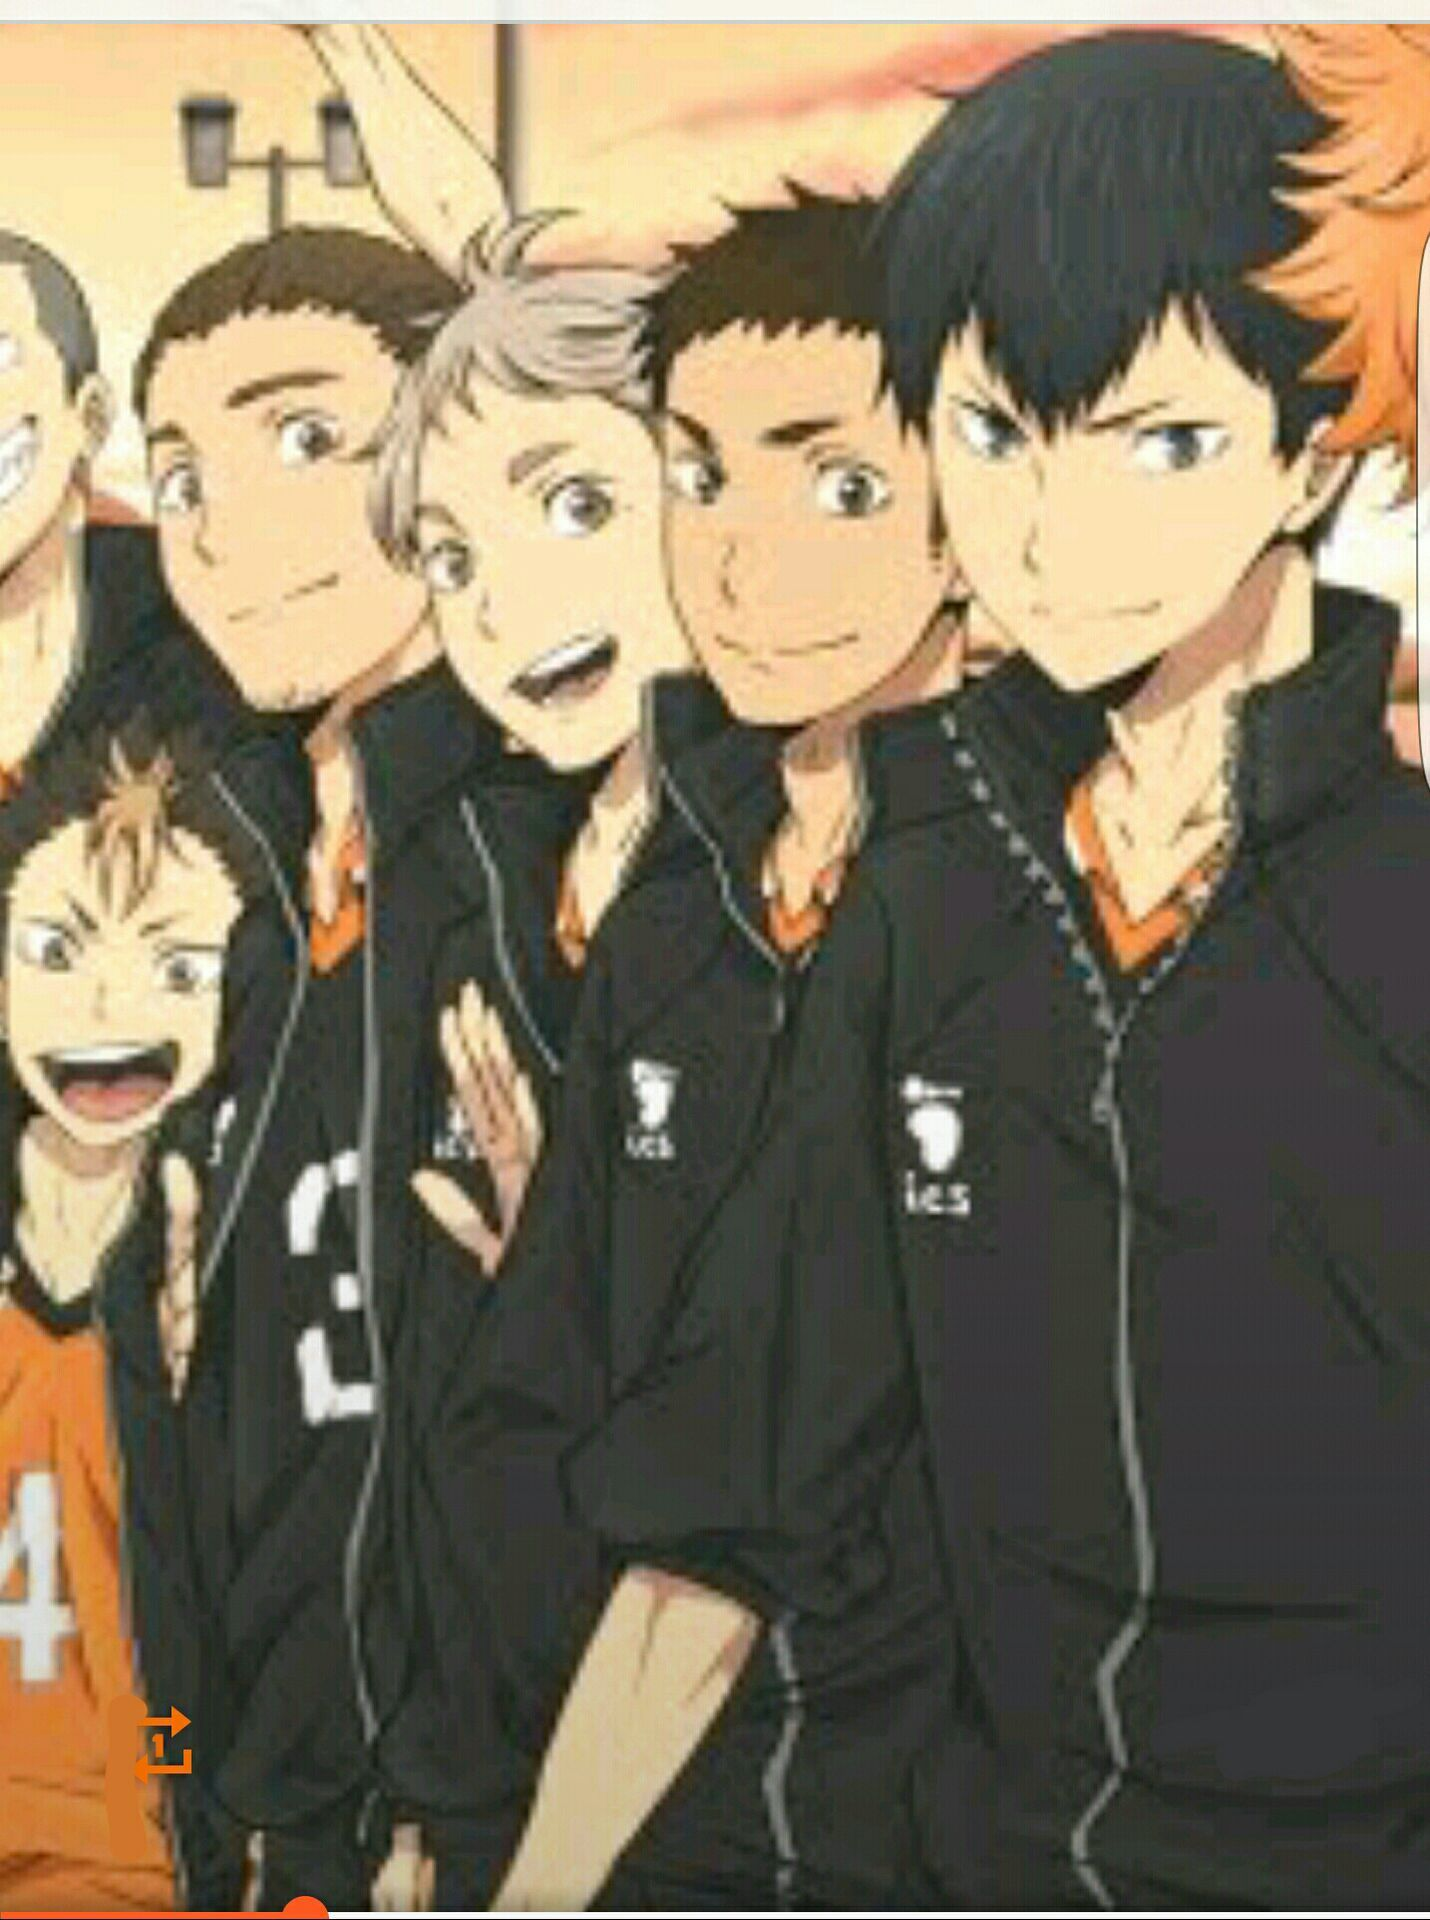 School Pause Haikyuu X Reader The Queen Of The Court Chapter 17 5 This Is The Ace Volleyball Anime Story Characters Haikyuu